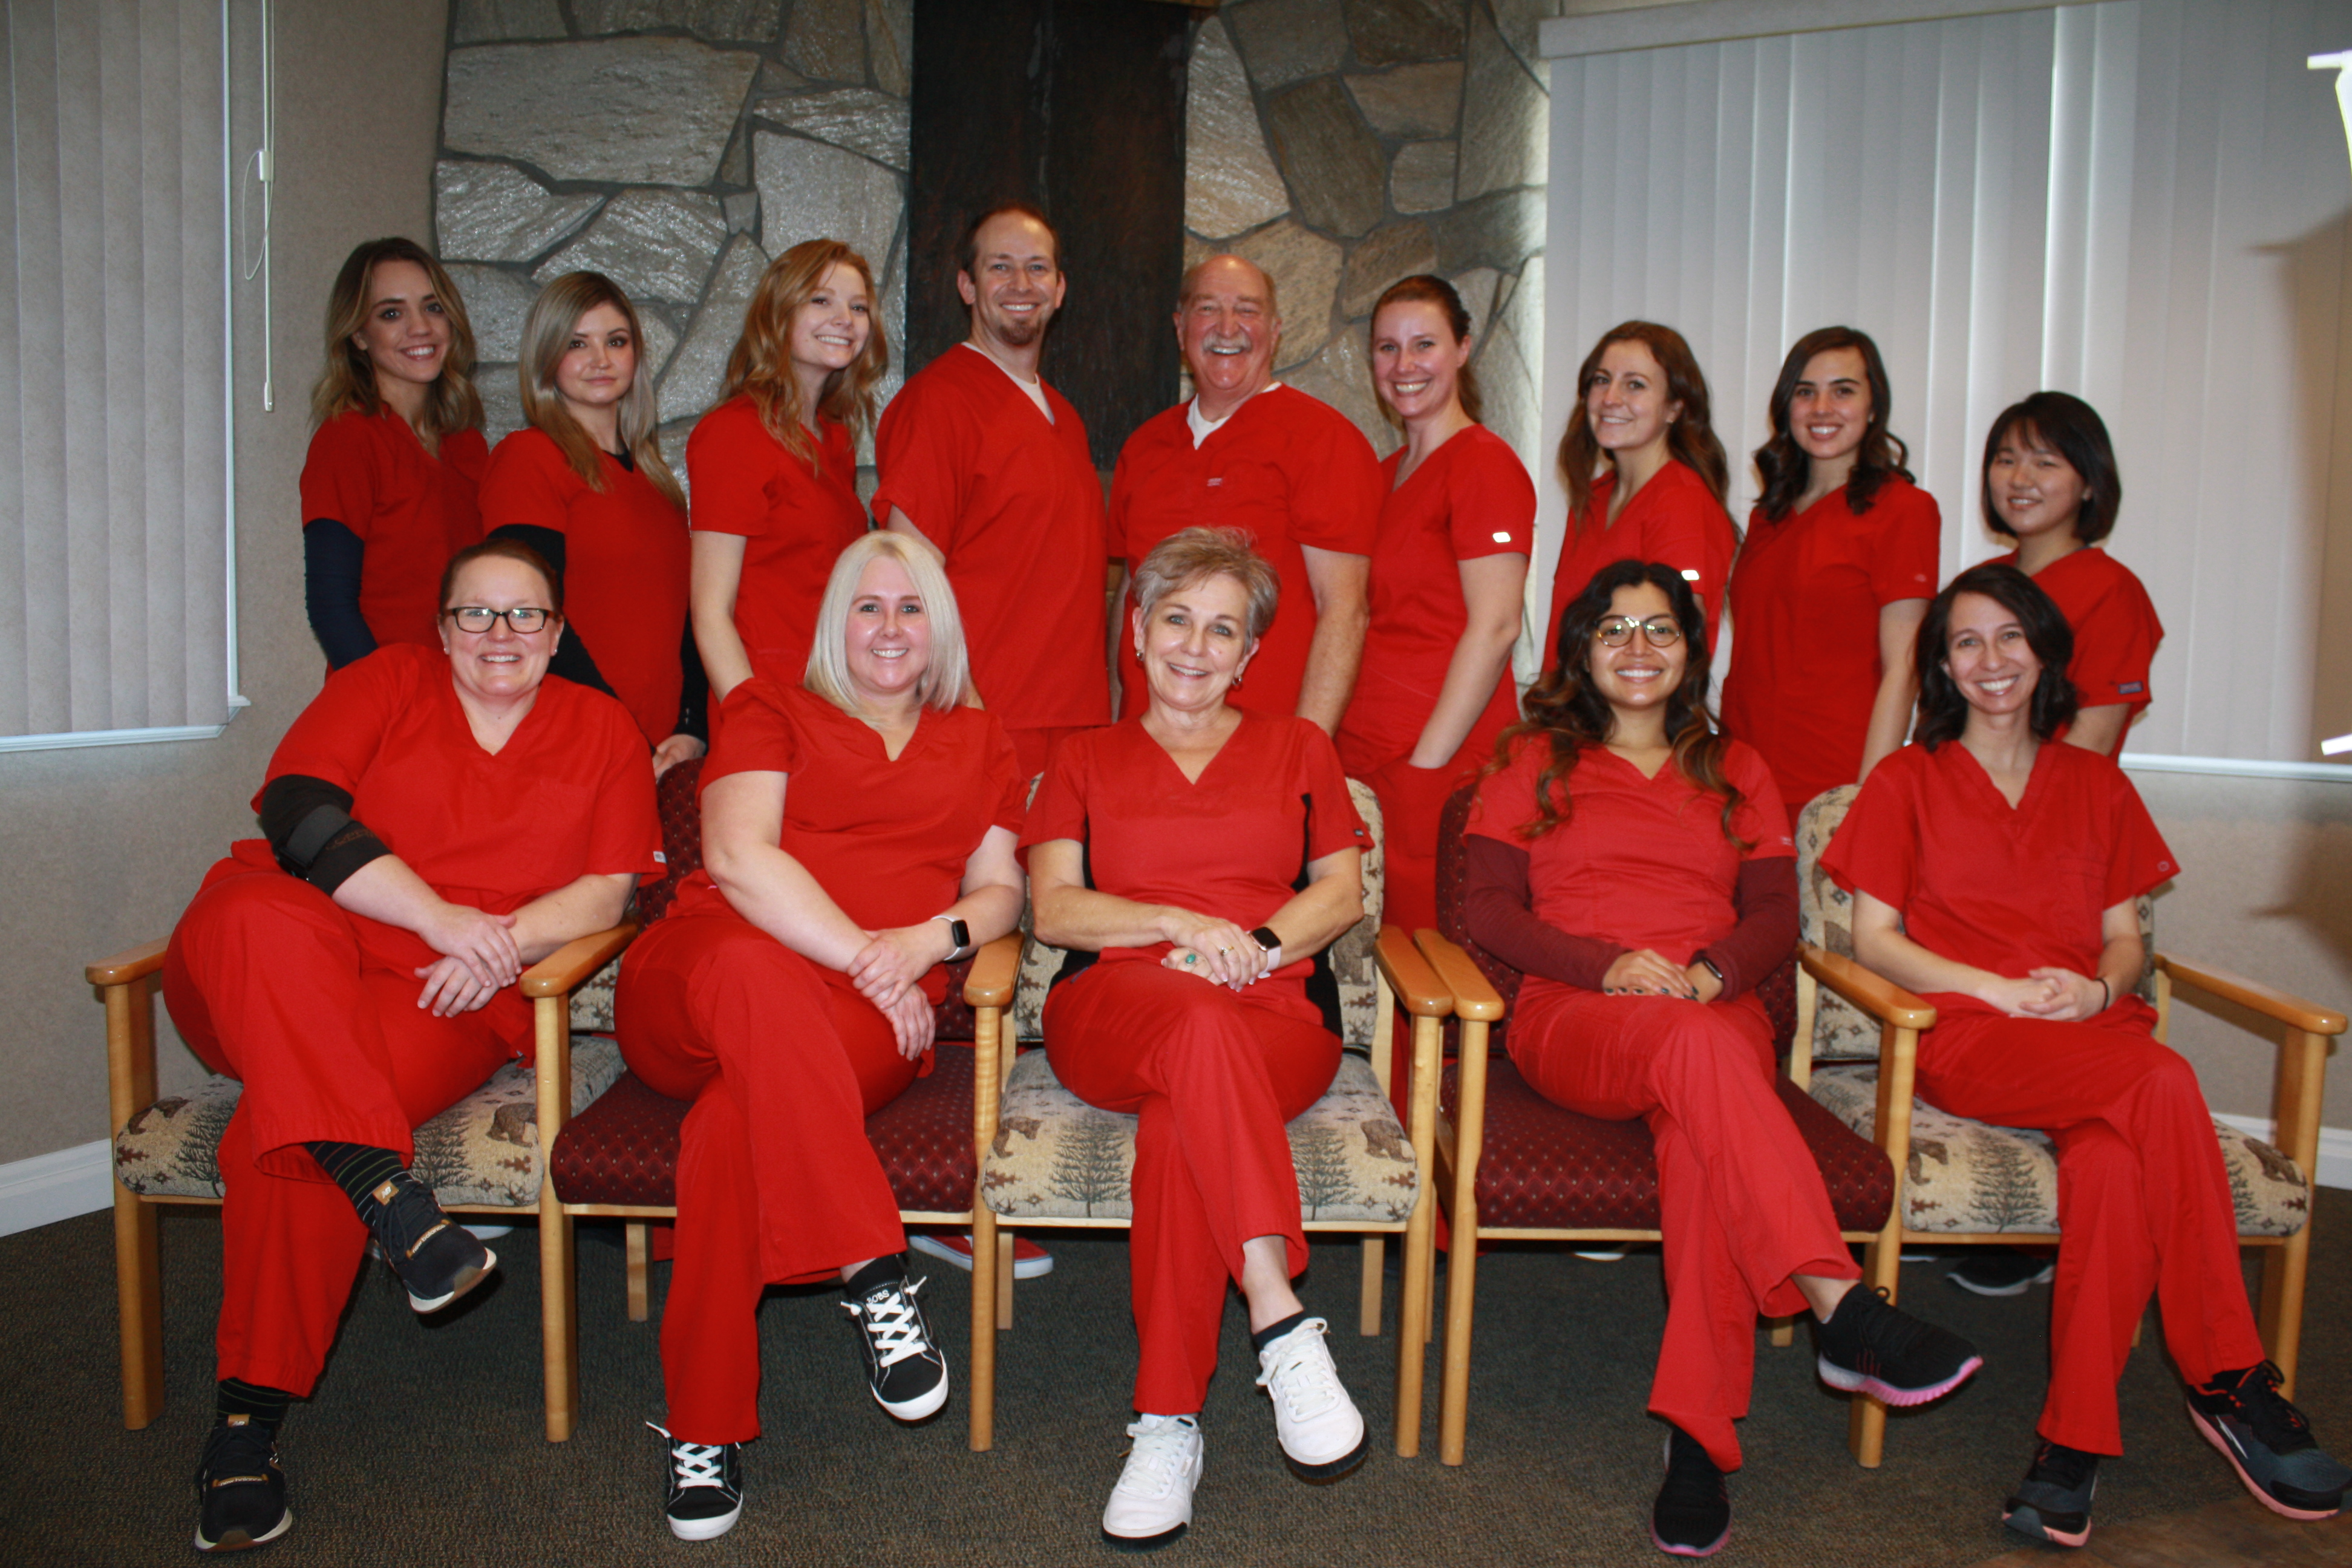 Mirci Dental Team all wearing red scrubs